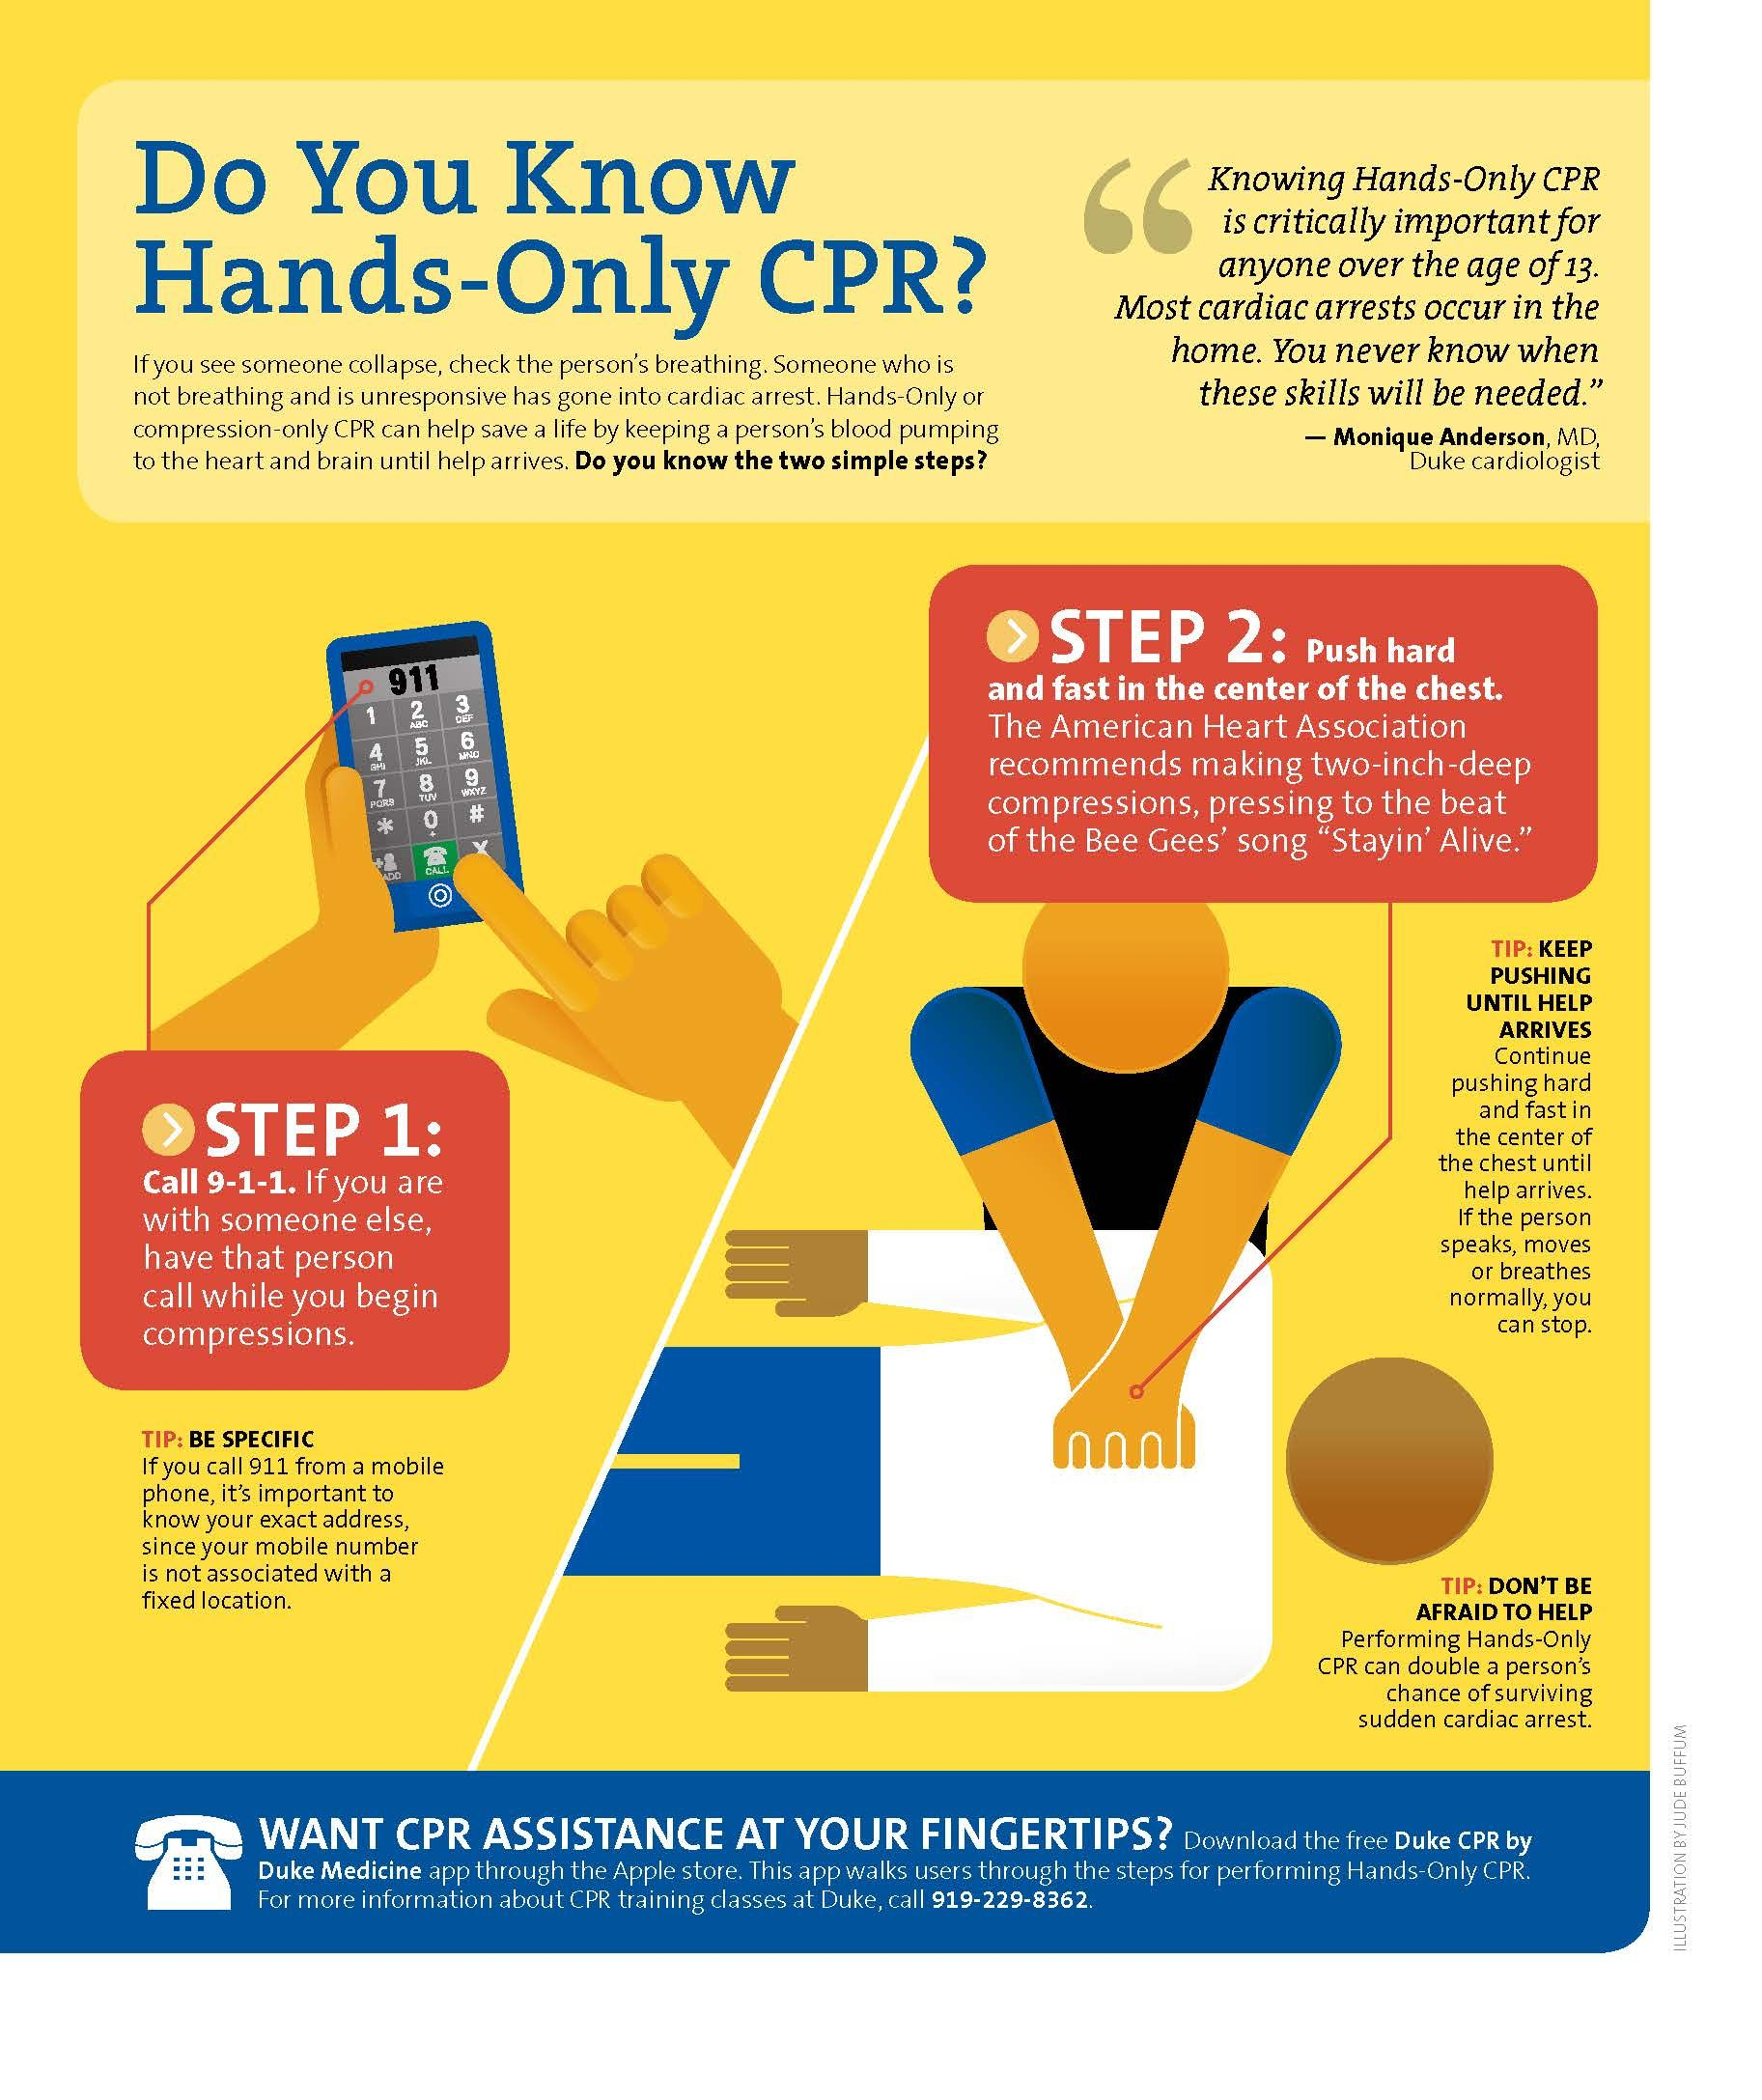 Colorado Cardiac Cpr: Image Result For Visual For CPR Instructions Compressions